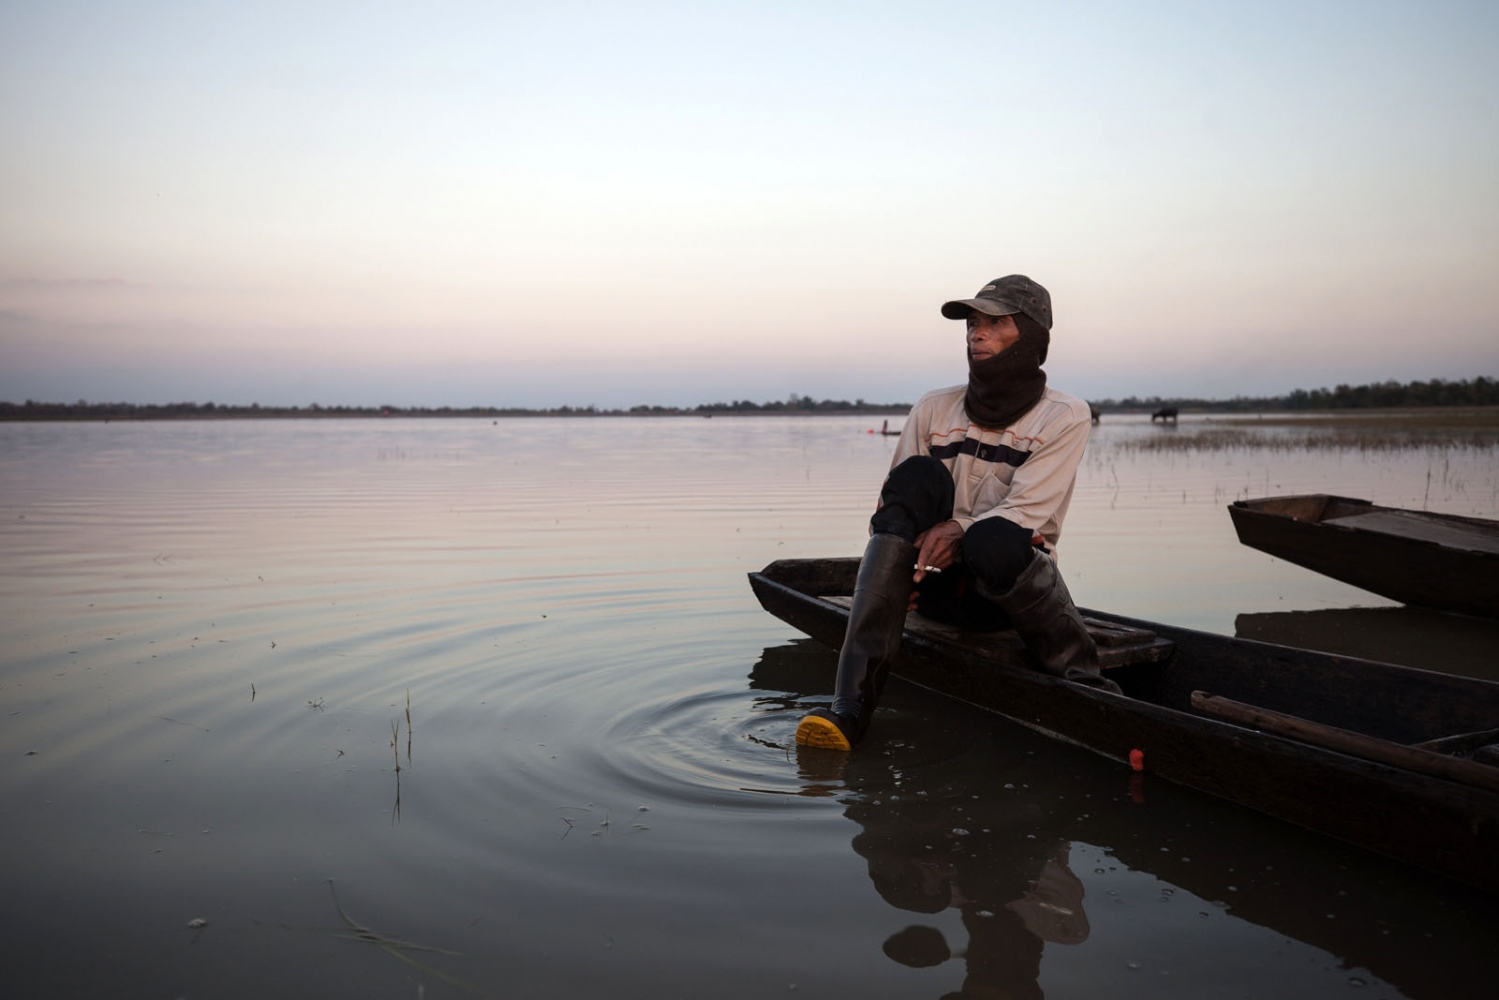 A fisherman returns to shore at dusk after placing his nets in Huay Thong Lake. He will return to collect the fish the next morning.